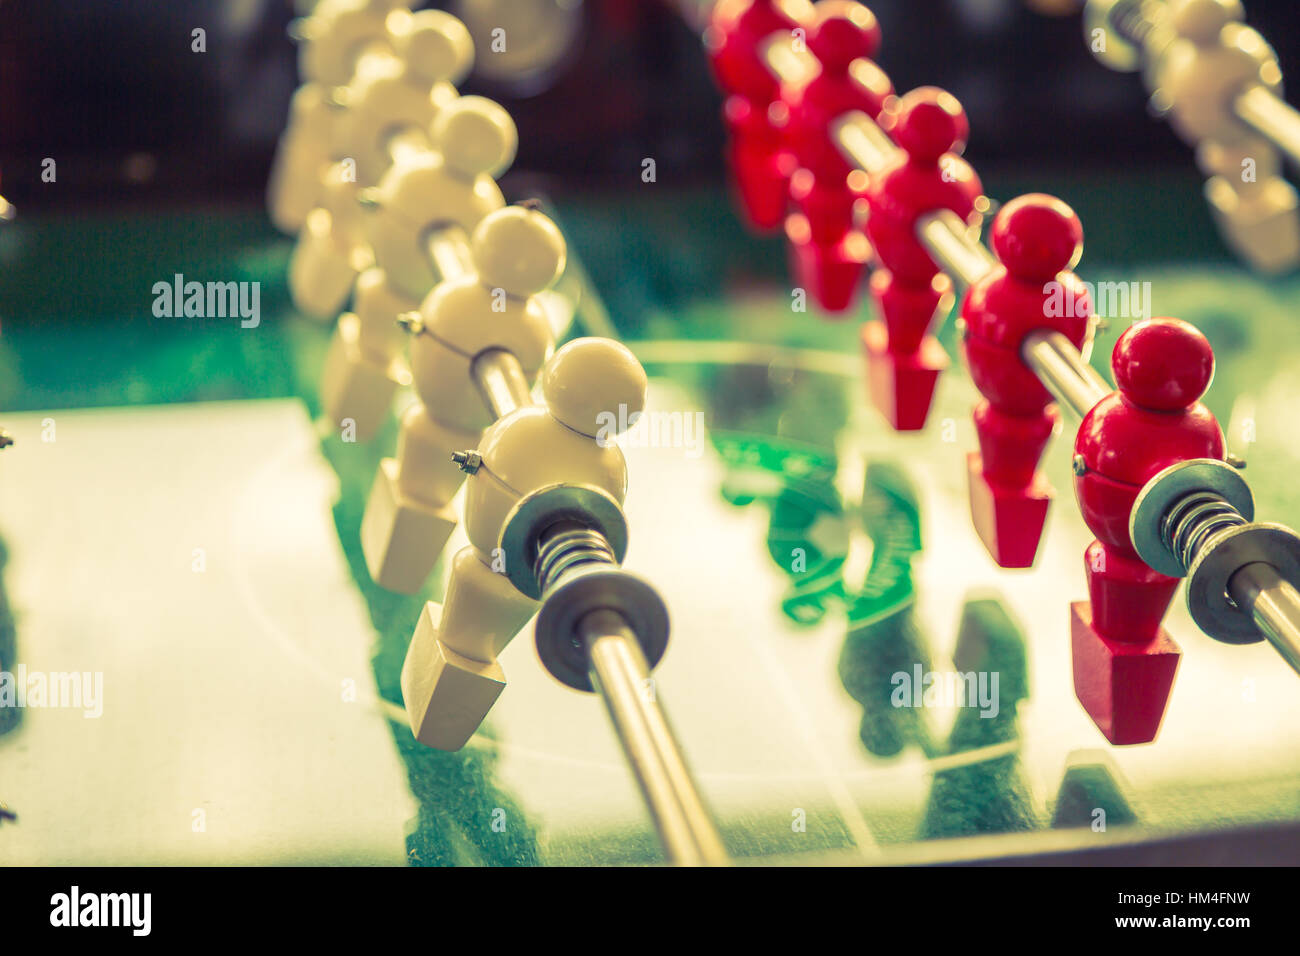 Football table game with red and white player ( Filtered image processed vintage effect. ) - Stock Image